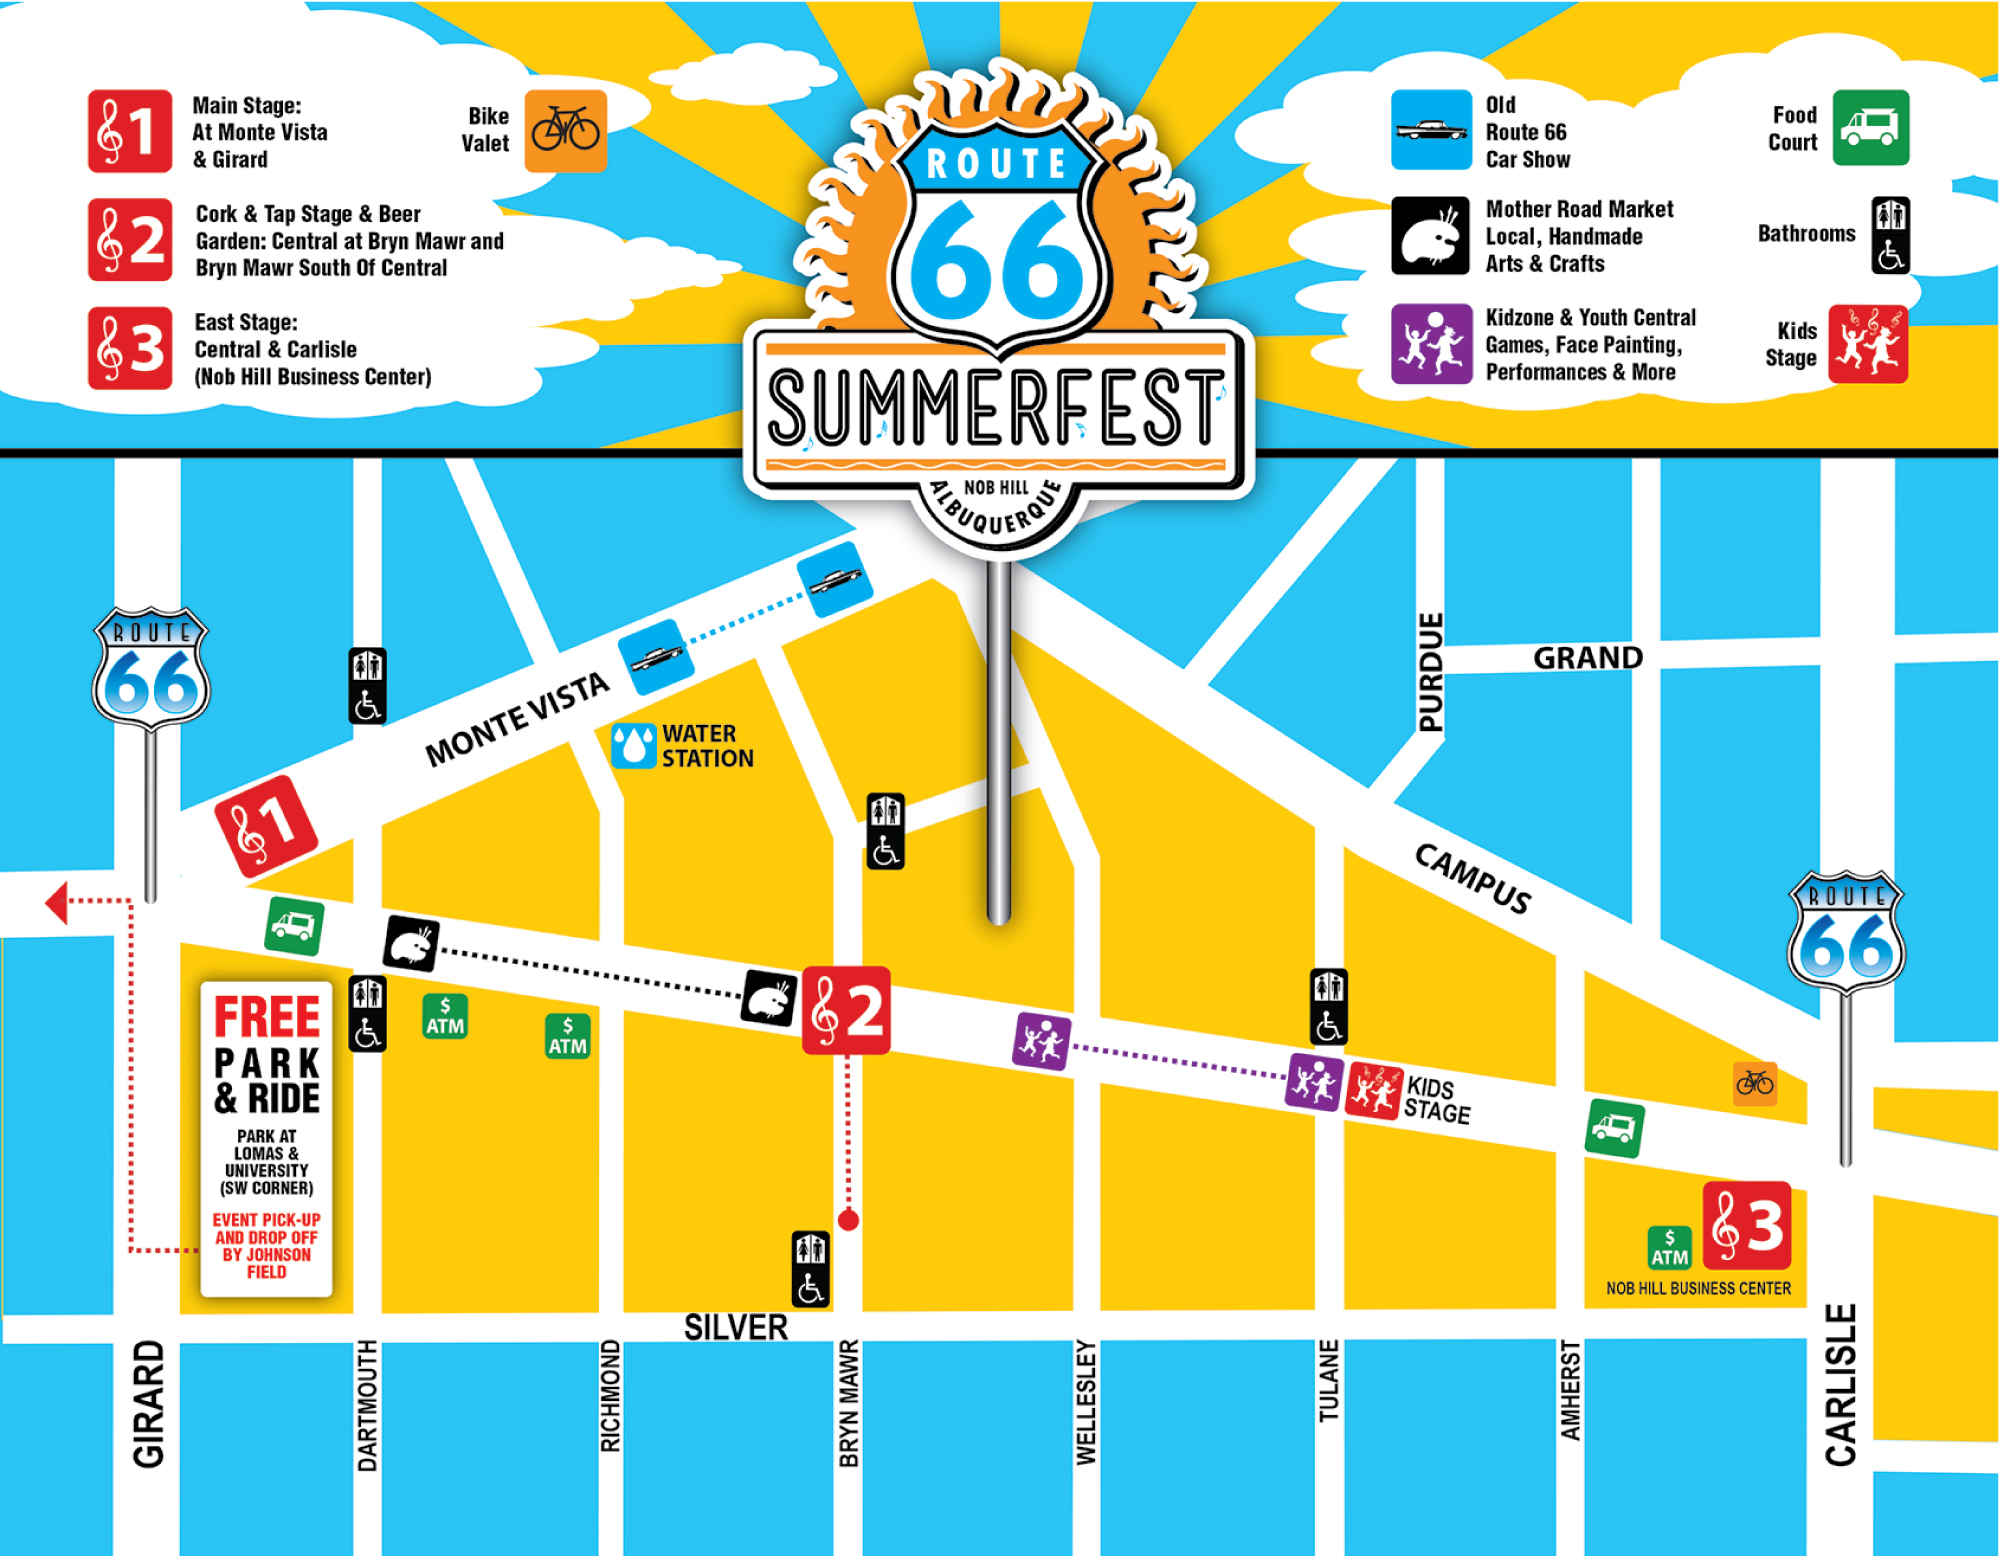 Route 66 2017 Summerfest Outpost Map on